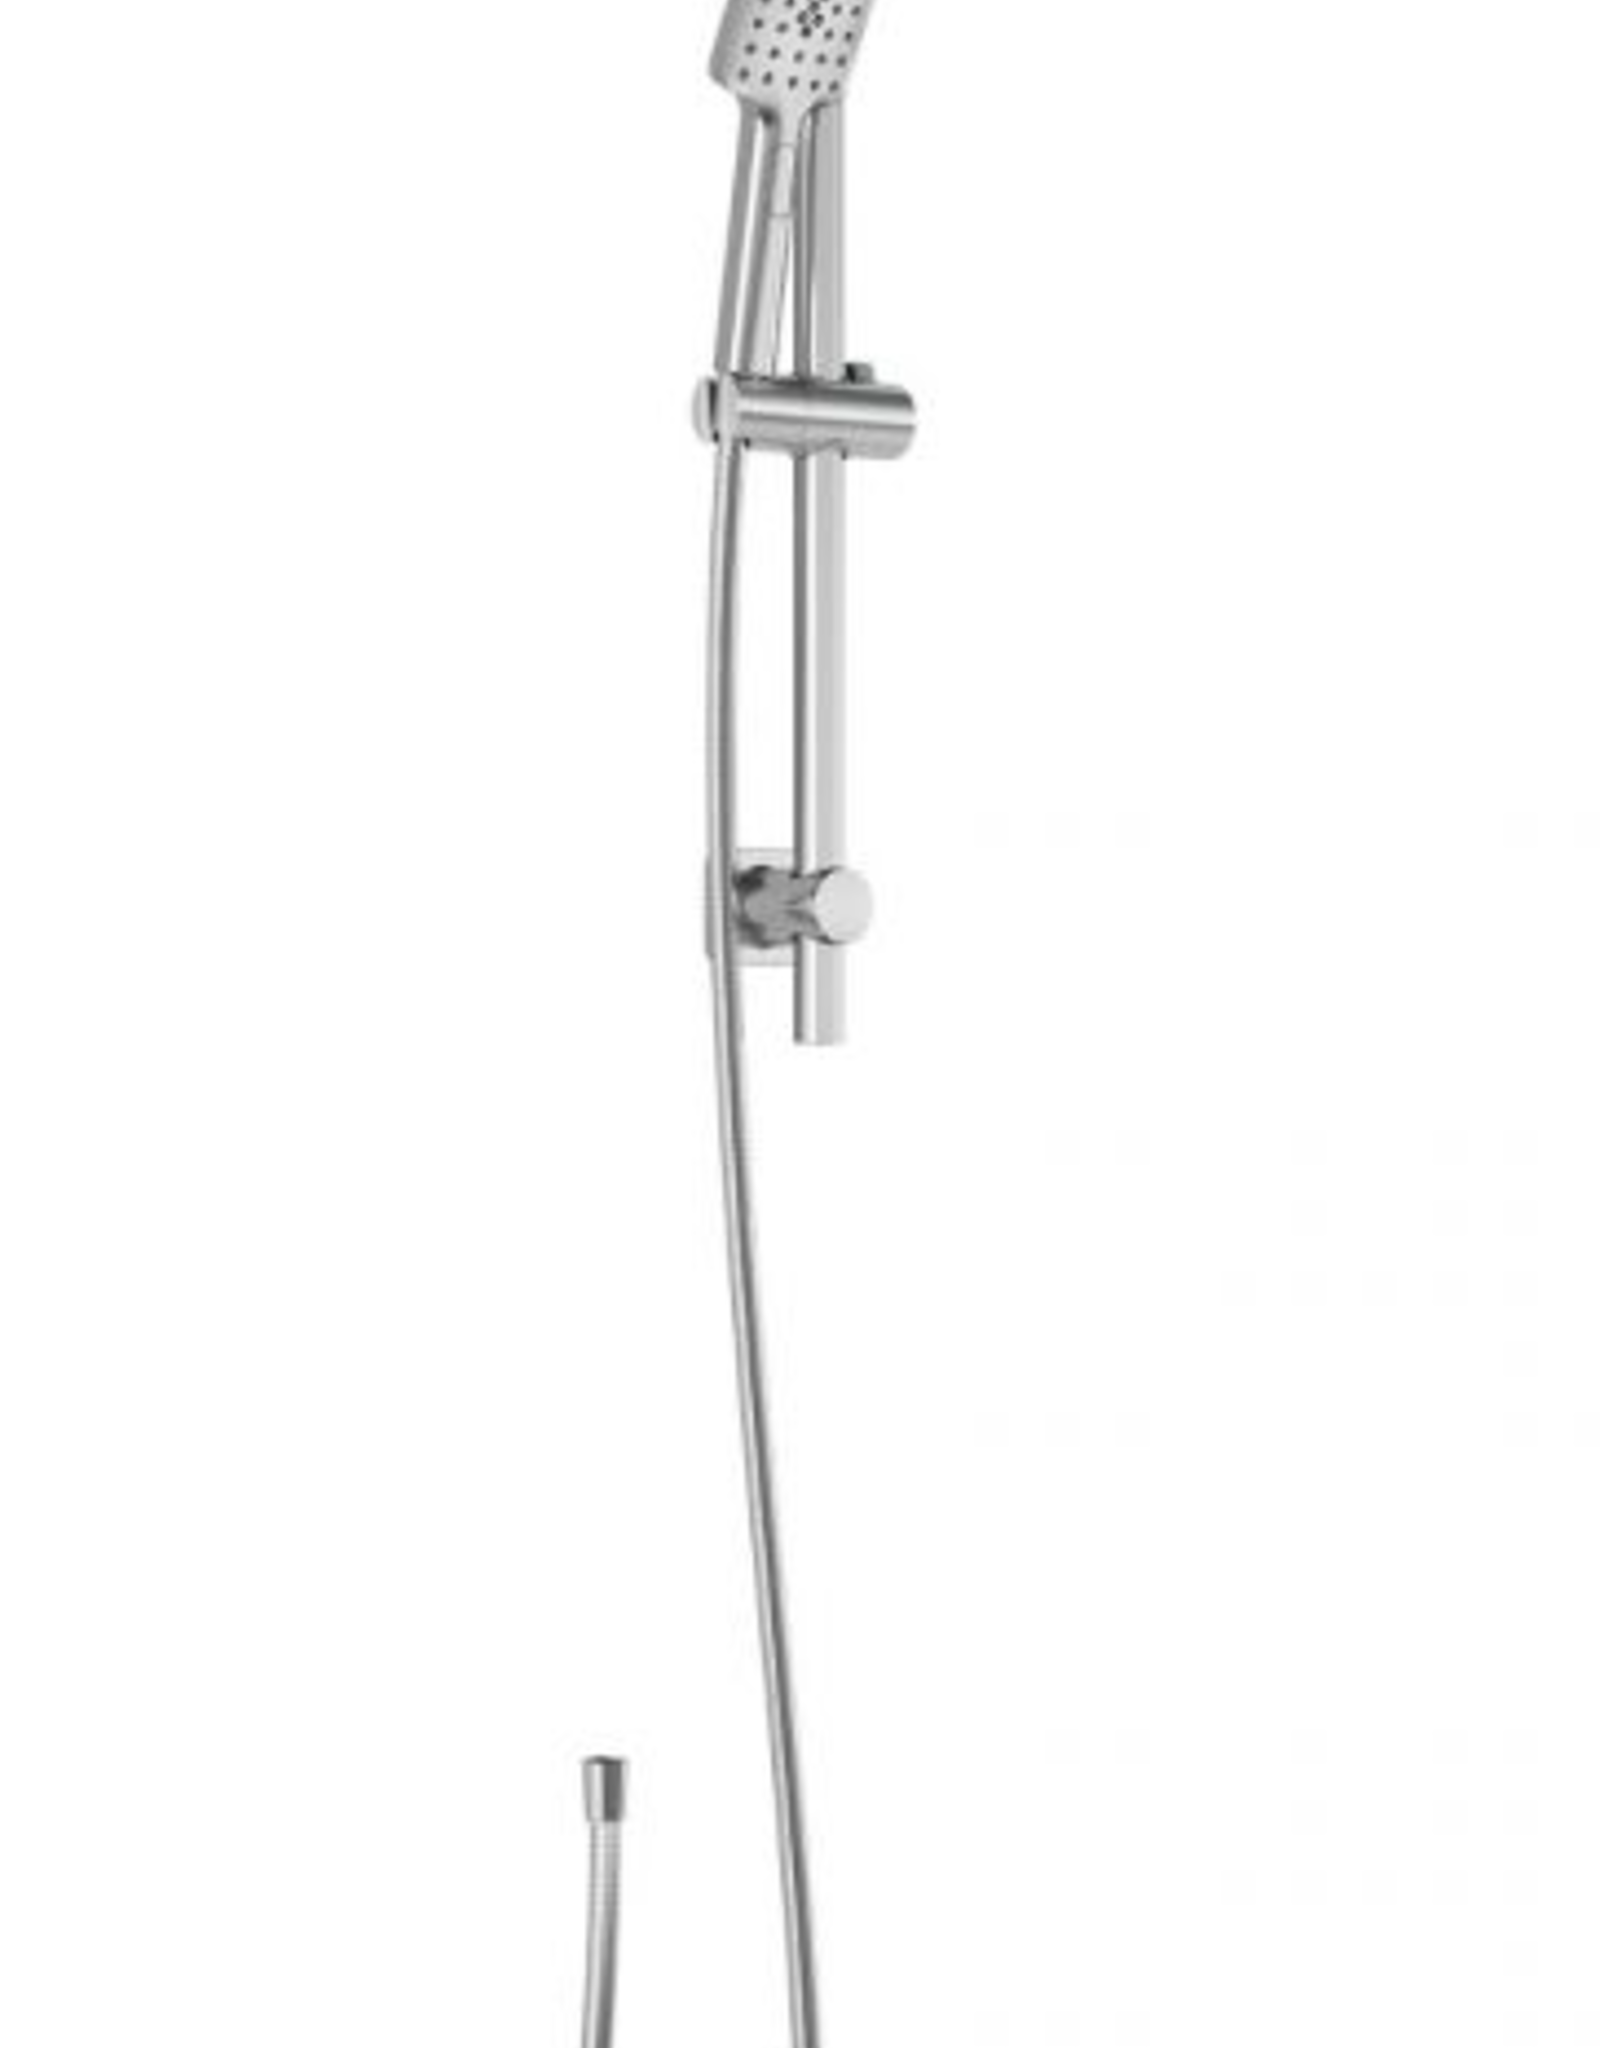 Kalia Kalia Sobrio PB6- Hand Shower w/ Diverter Tub Spout- Chrome